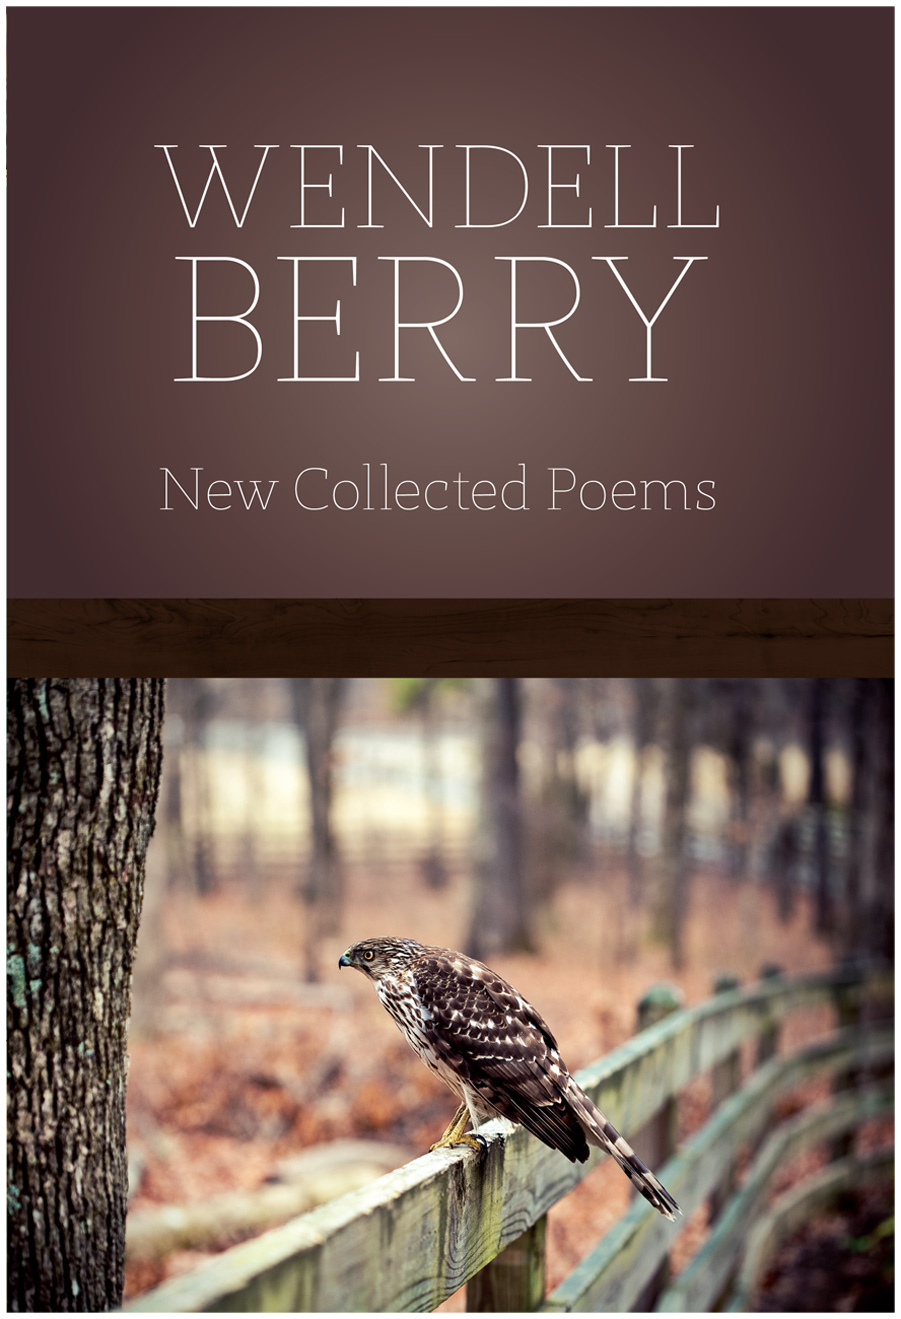 new-collected-poems-front-cover-v3-1